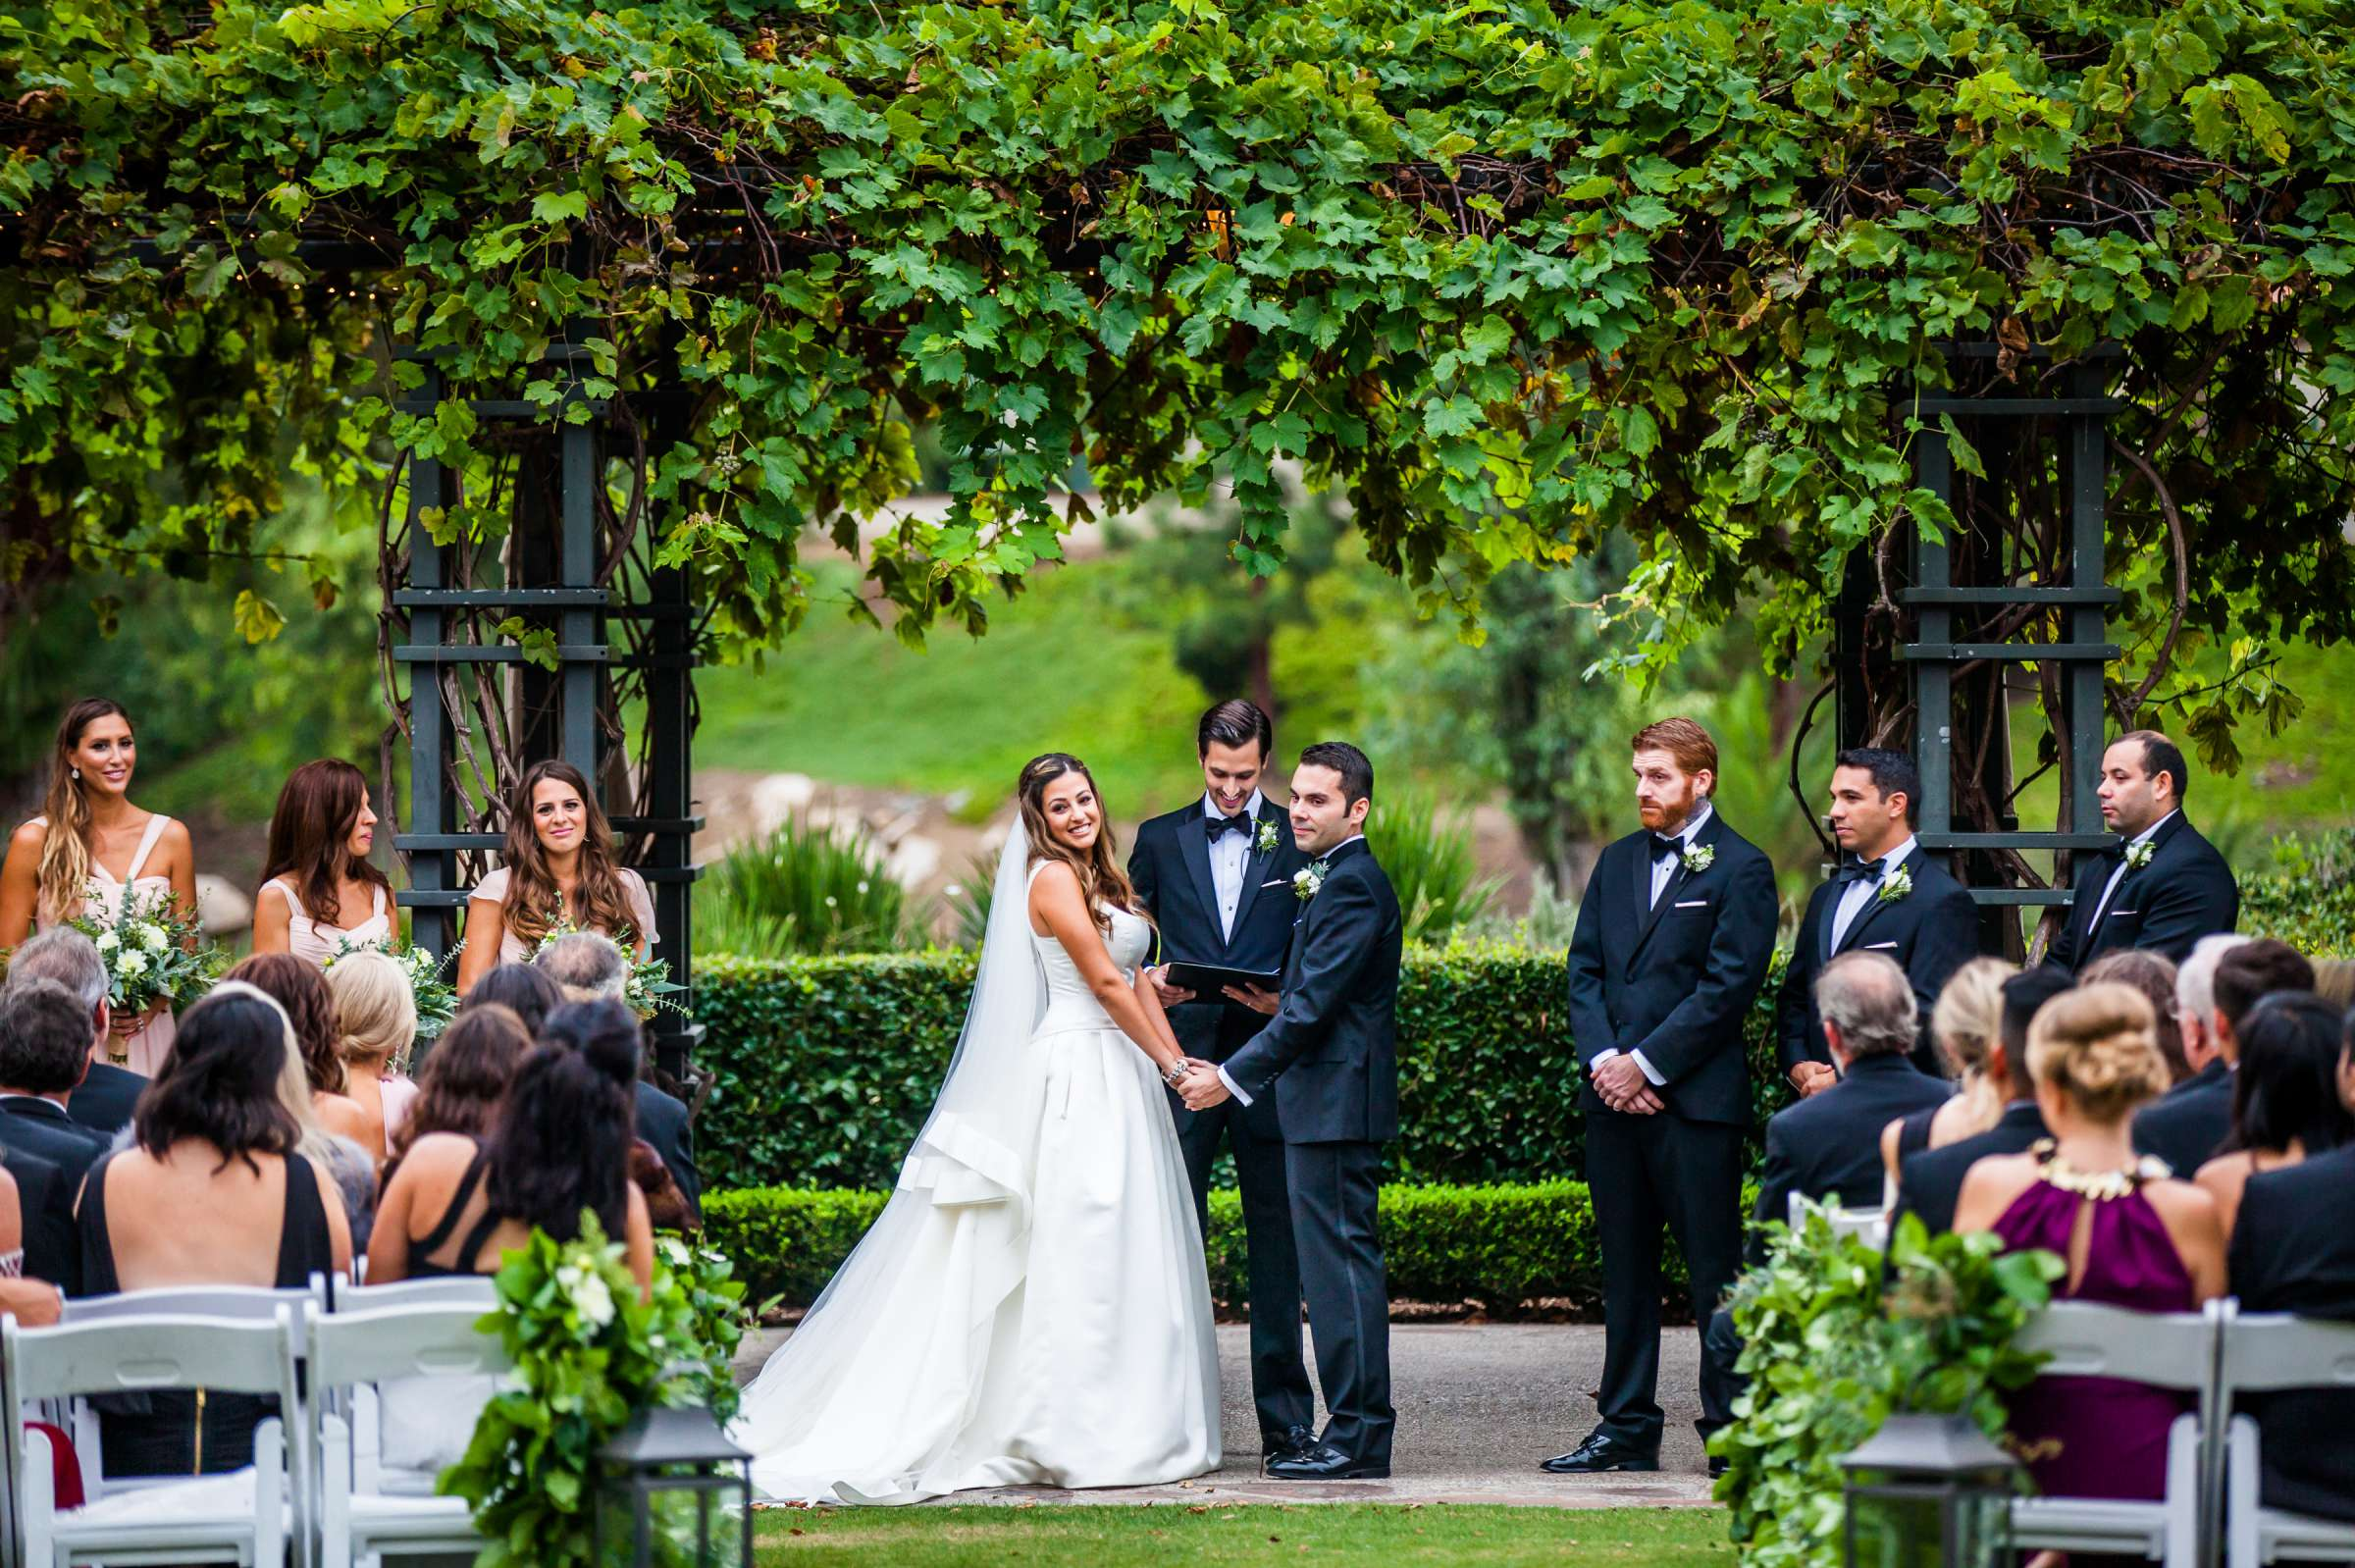 Rancho Bernardo Inn Wedding coordinated by Très Chic Events, Stefania and Nicholas Wedding Photo #43 by True Photography